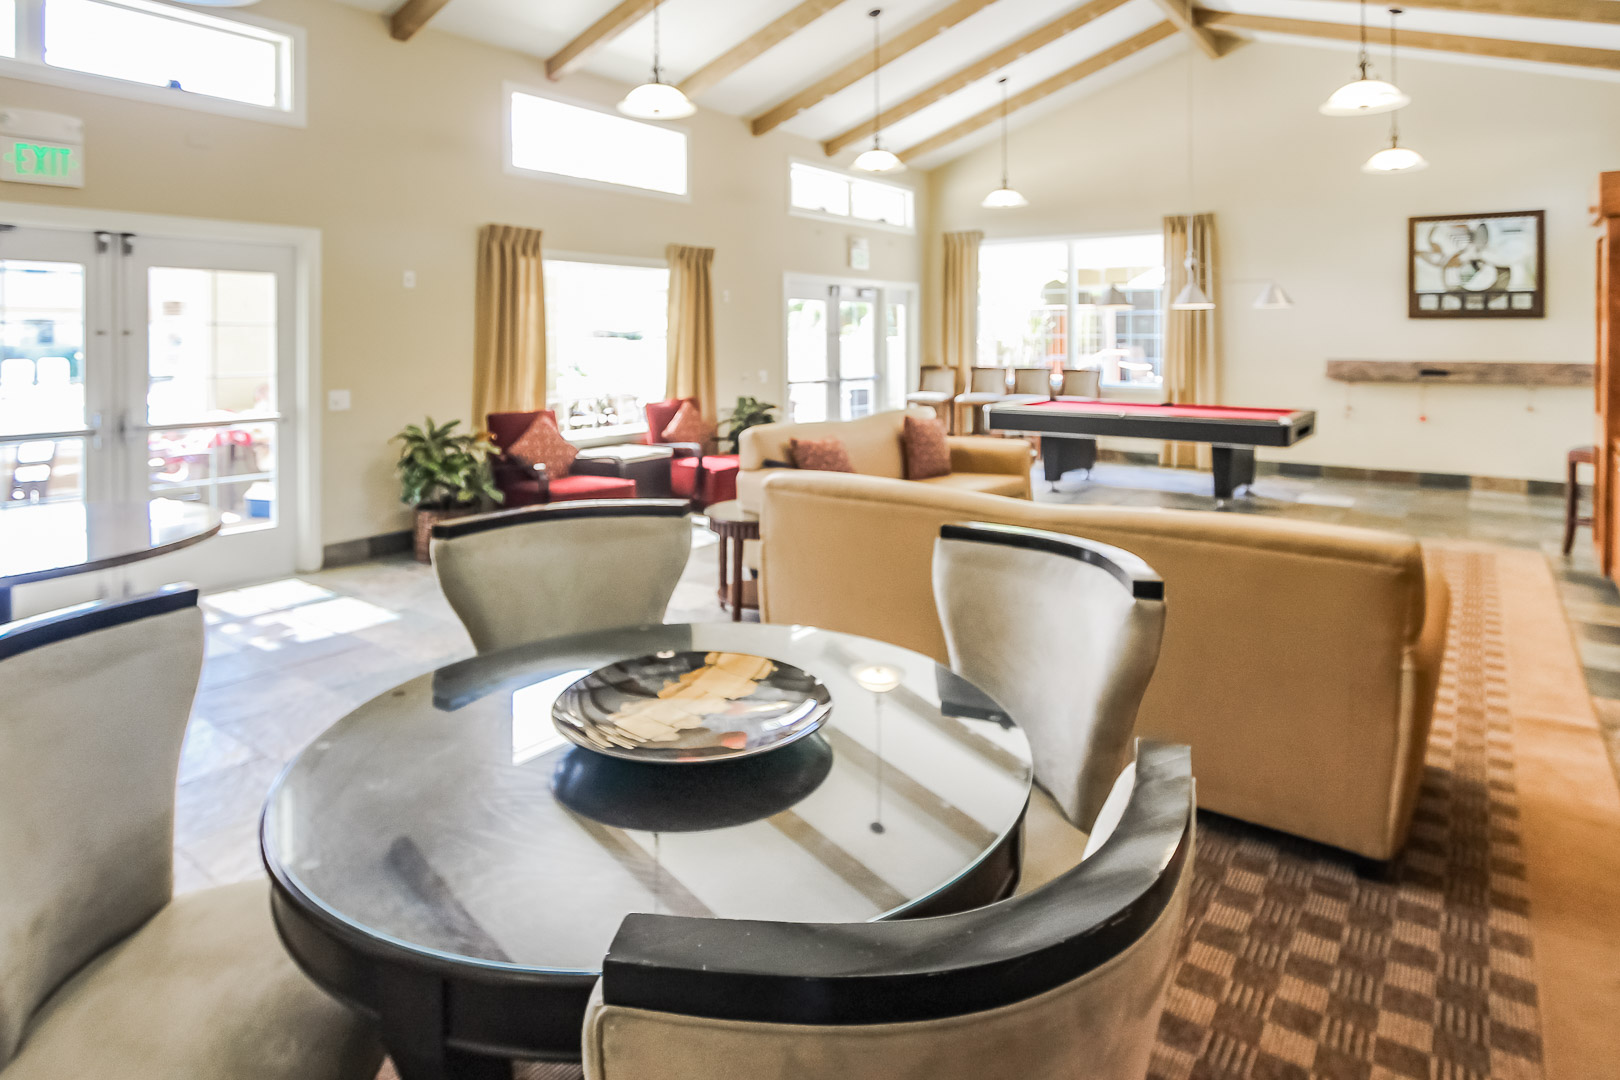 A pool table and lounging area at VRI's Winner Circle Resort in California.